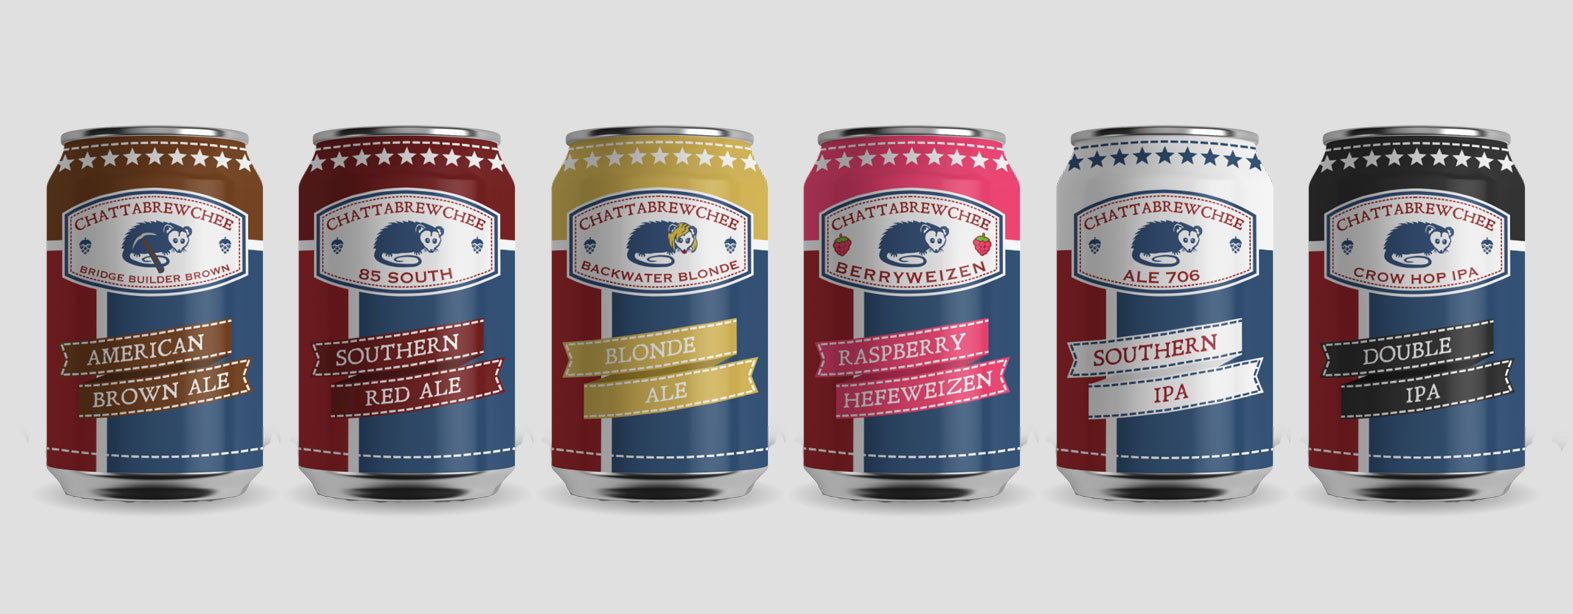 Raleigh Brewery Can Design Mockup